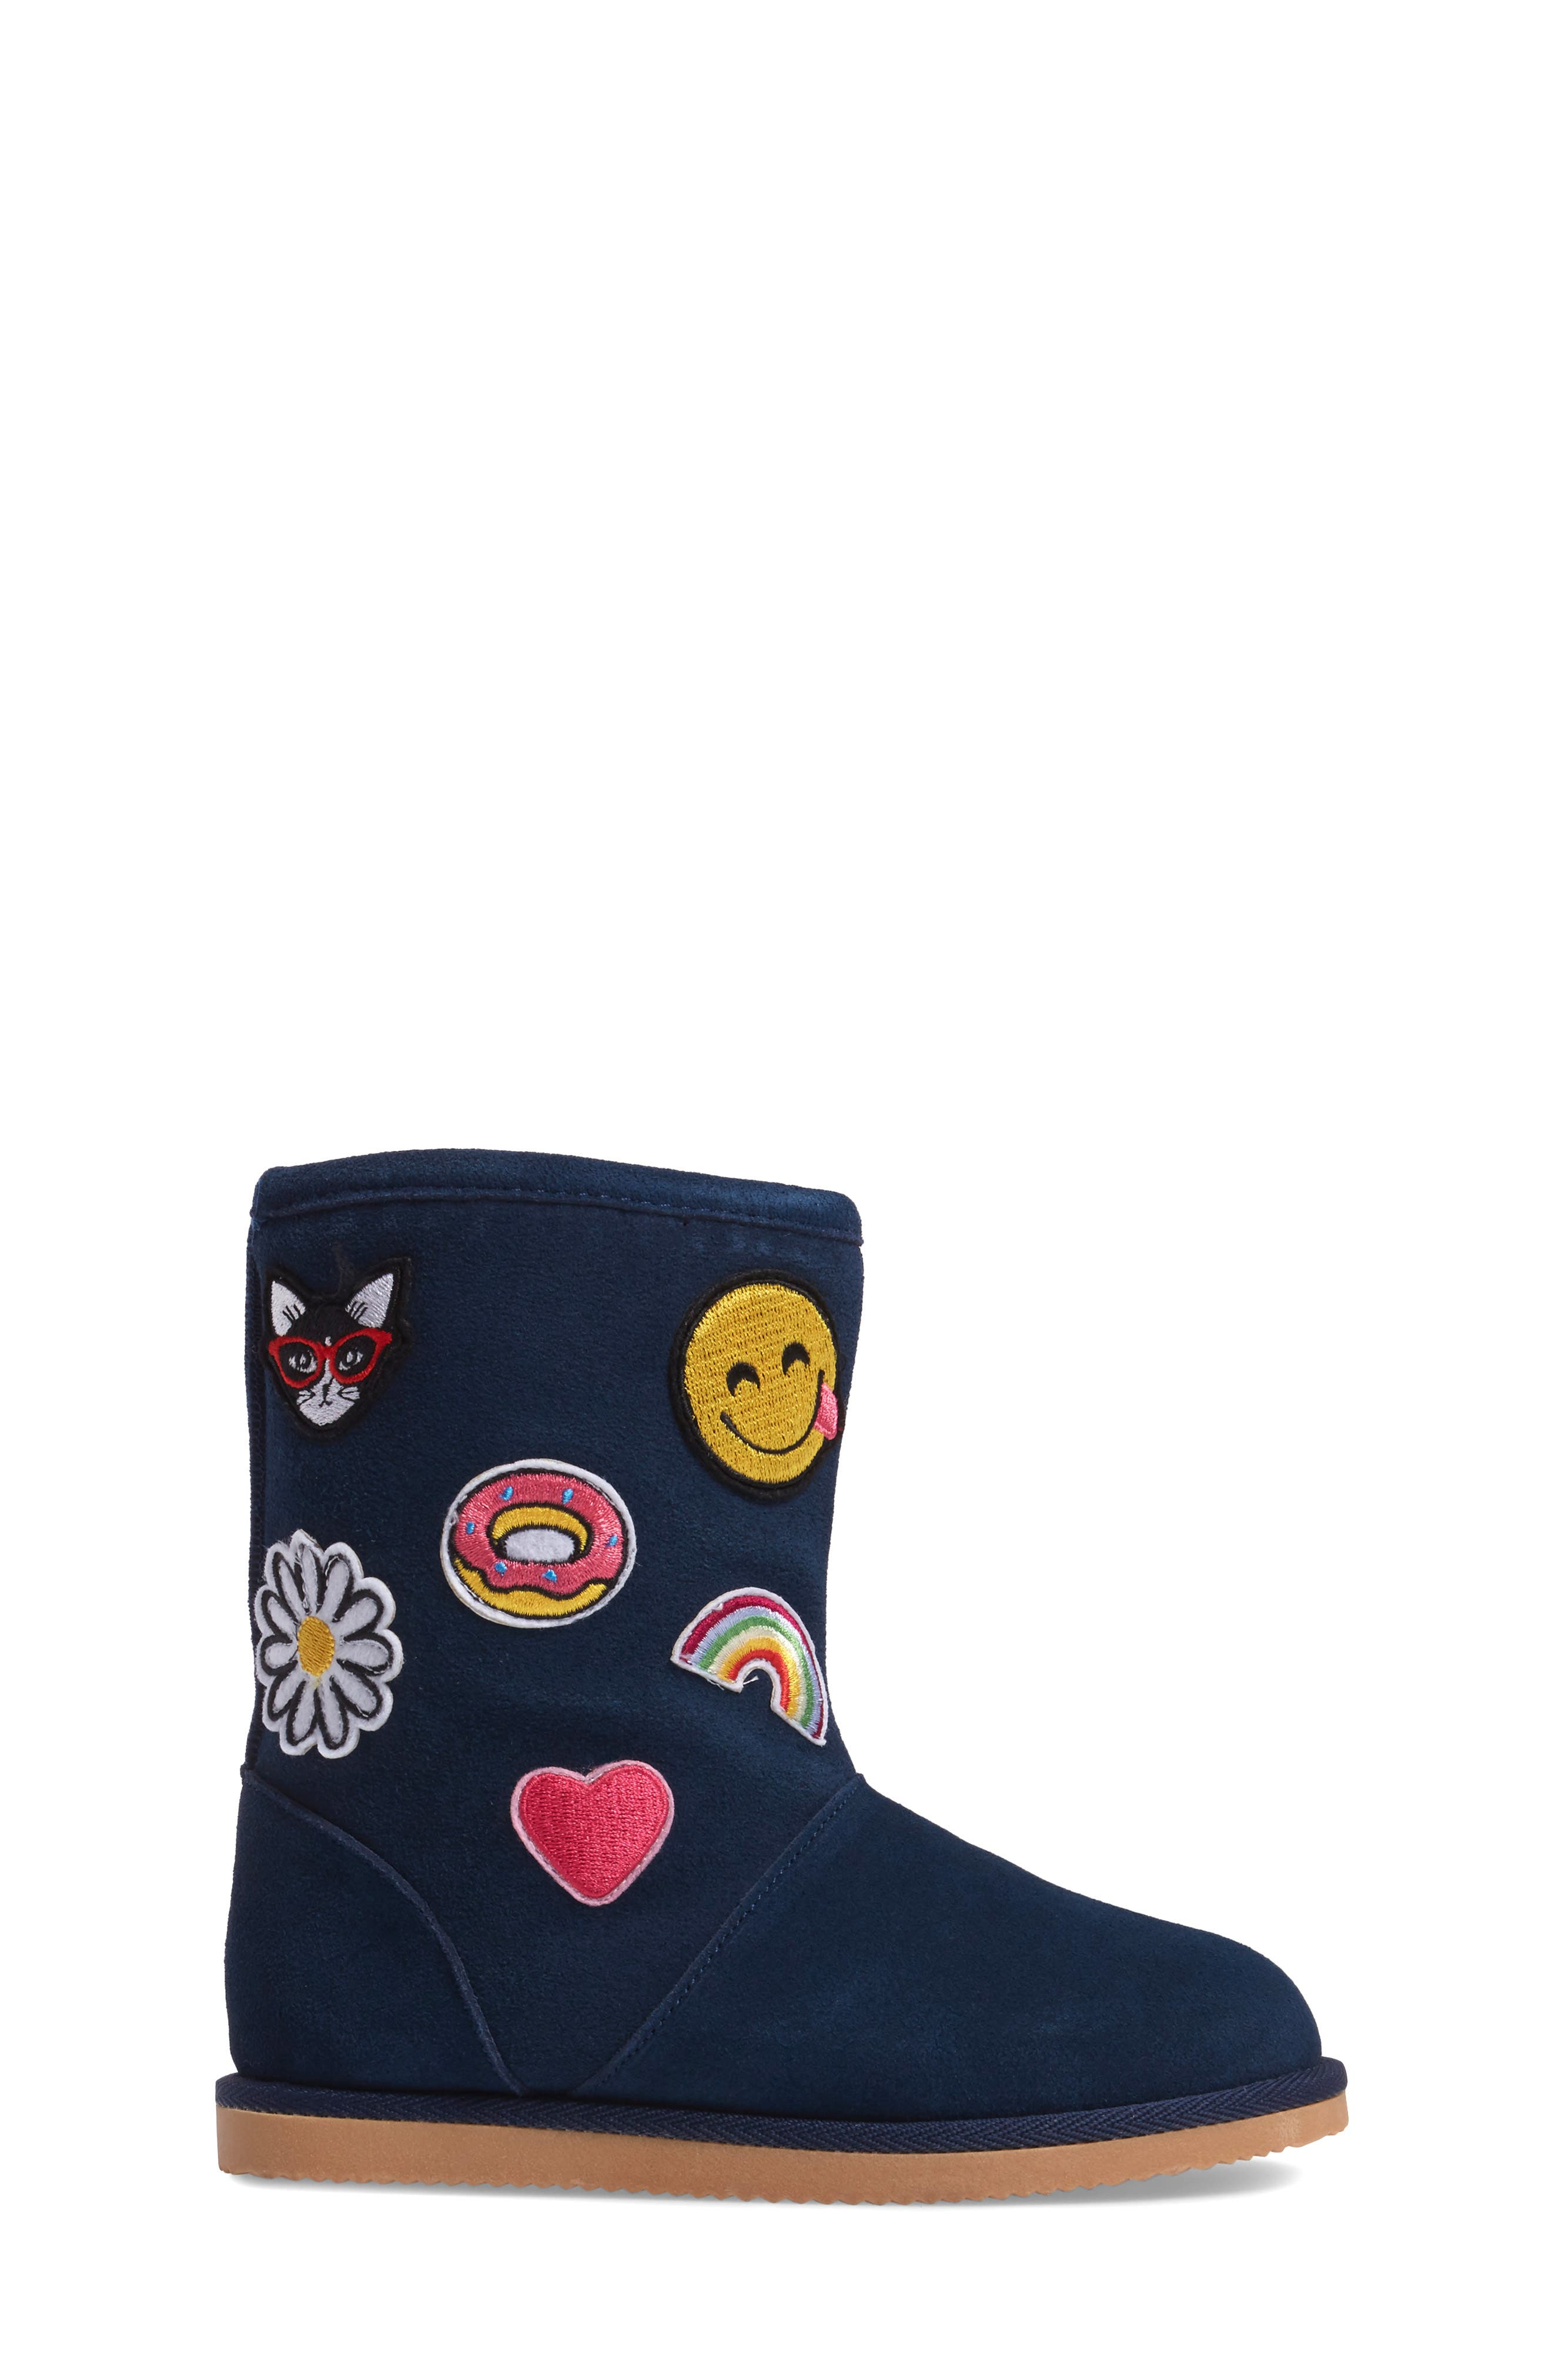 Alternate Image 3  - Tucker + Tate Connie Appliqué Faux Fur Boot (Walker, Toddler, Little Kid & Big Kid)